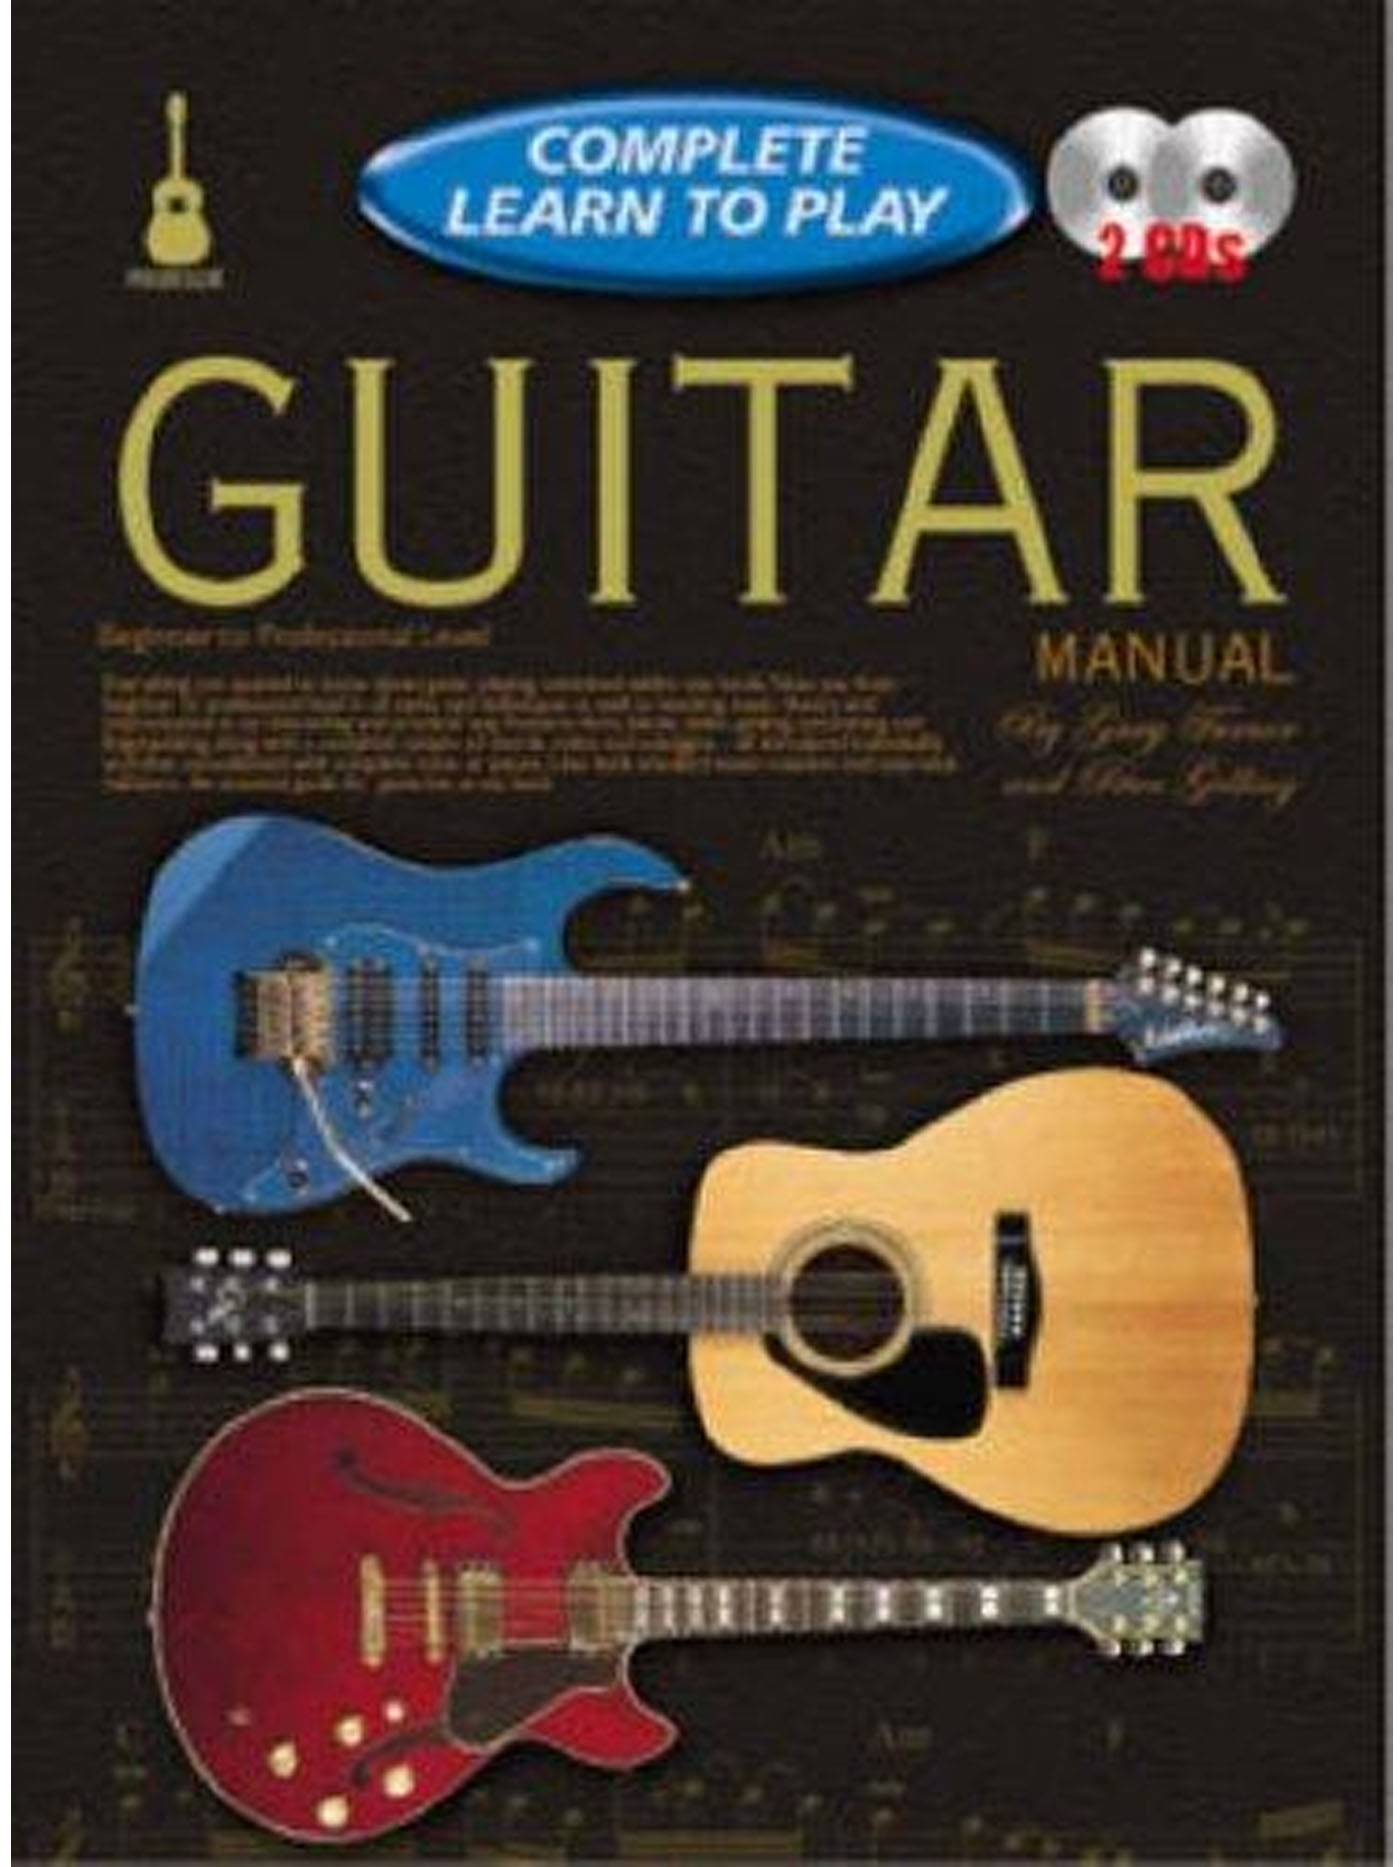 Complete Learn To Play Guitar Manual Book & CDs Beginner to Professional S141